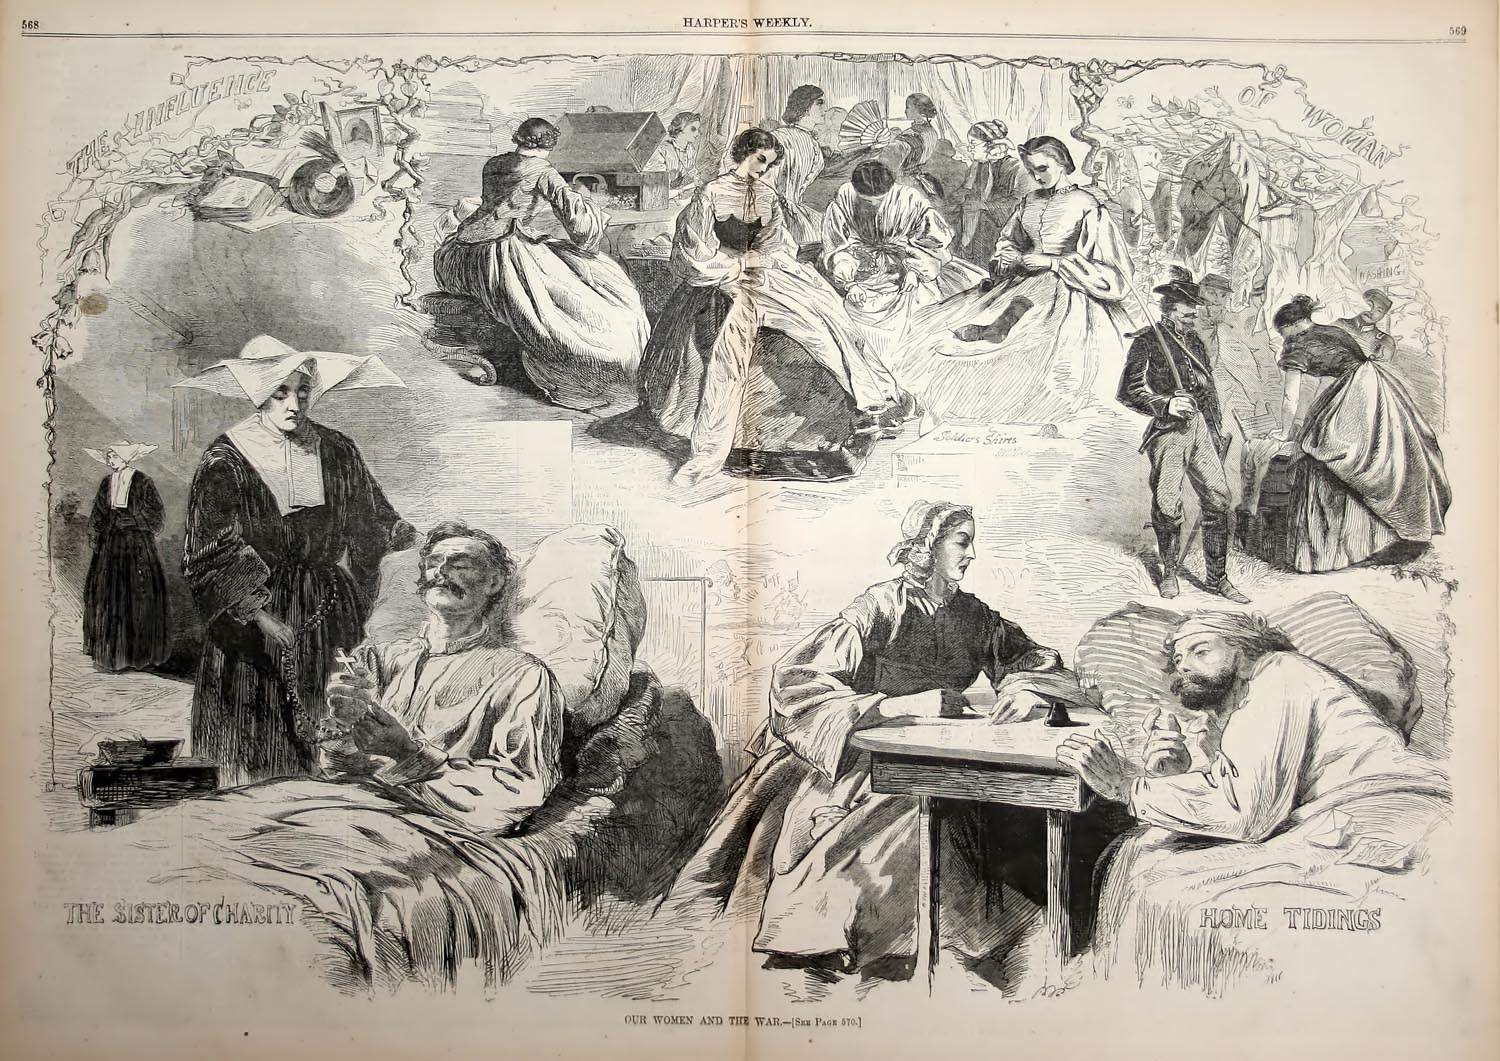 This illustration depicts the different roles women filled during the Civil War.